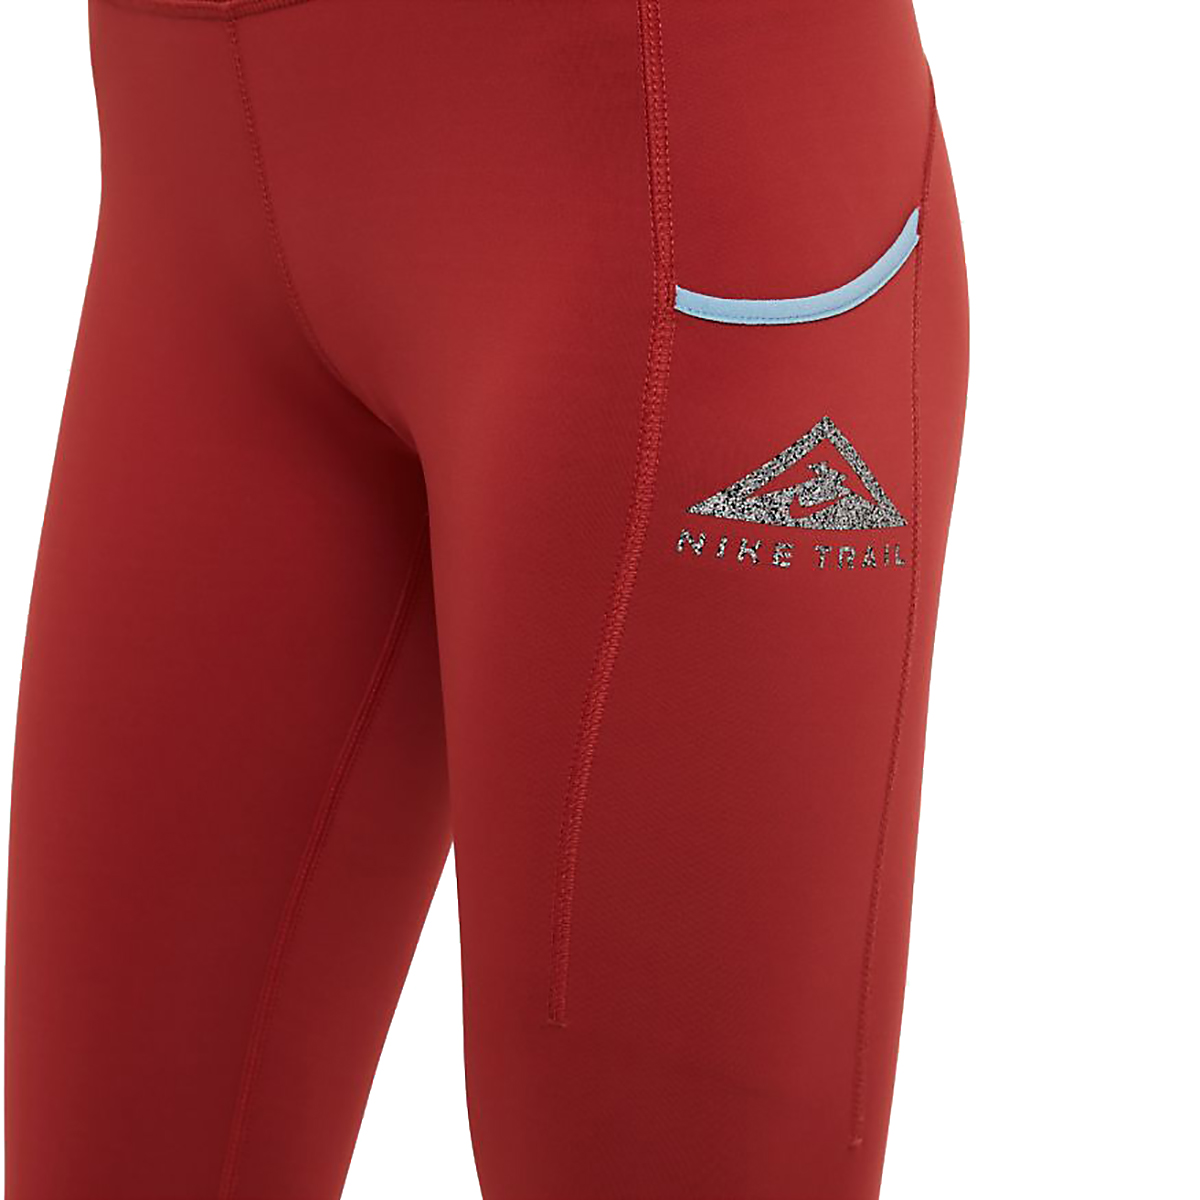 Women's Nike Epic Luxe Trail Running Tights - Color: Dark Cayenne/Cerulean/Reflective Silver - Size: XS, Dark Cayenne/Cerulean/Reflective Silver, large, image 3